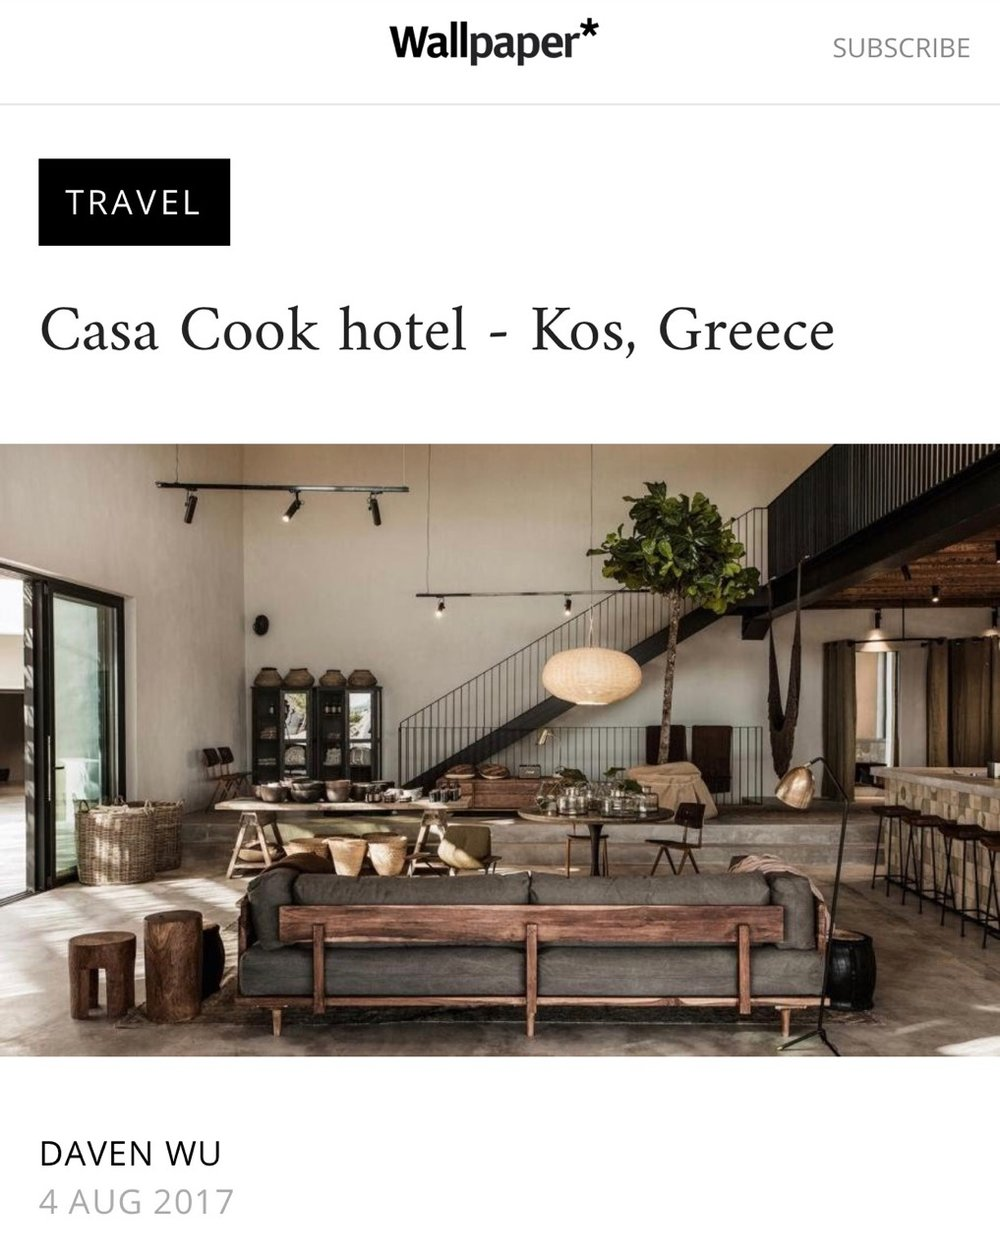 CASA COOK KOS    WALLPEPER MAGAZINE / AUG 2017